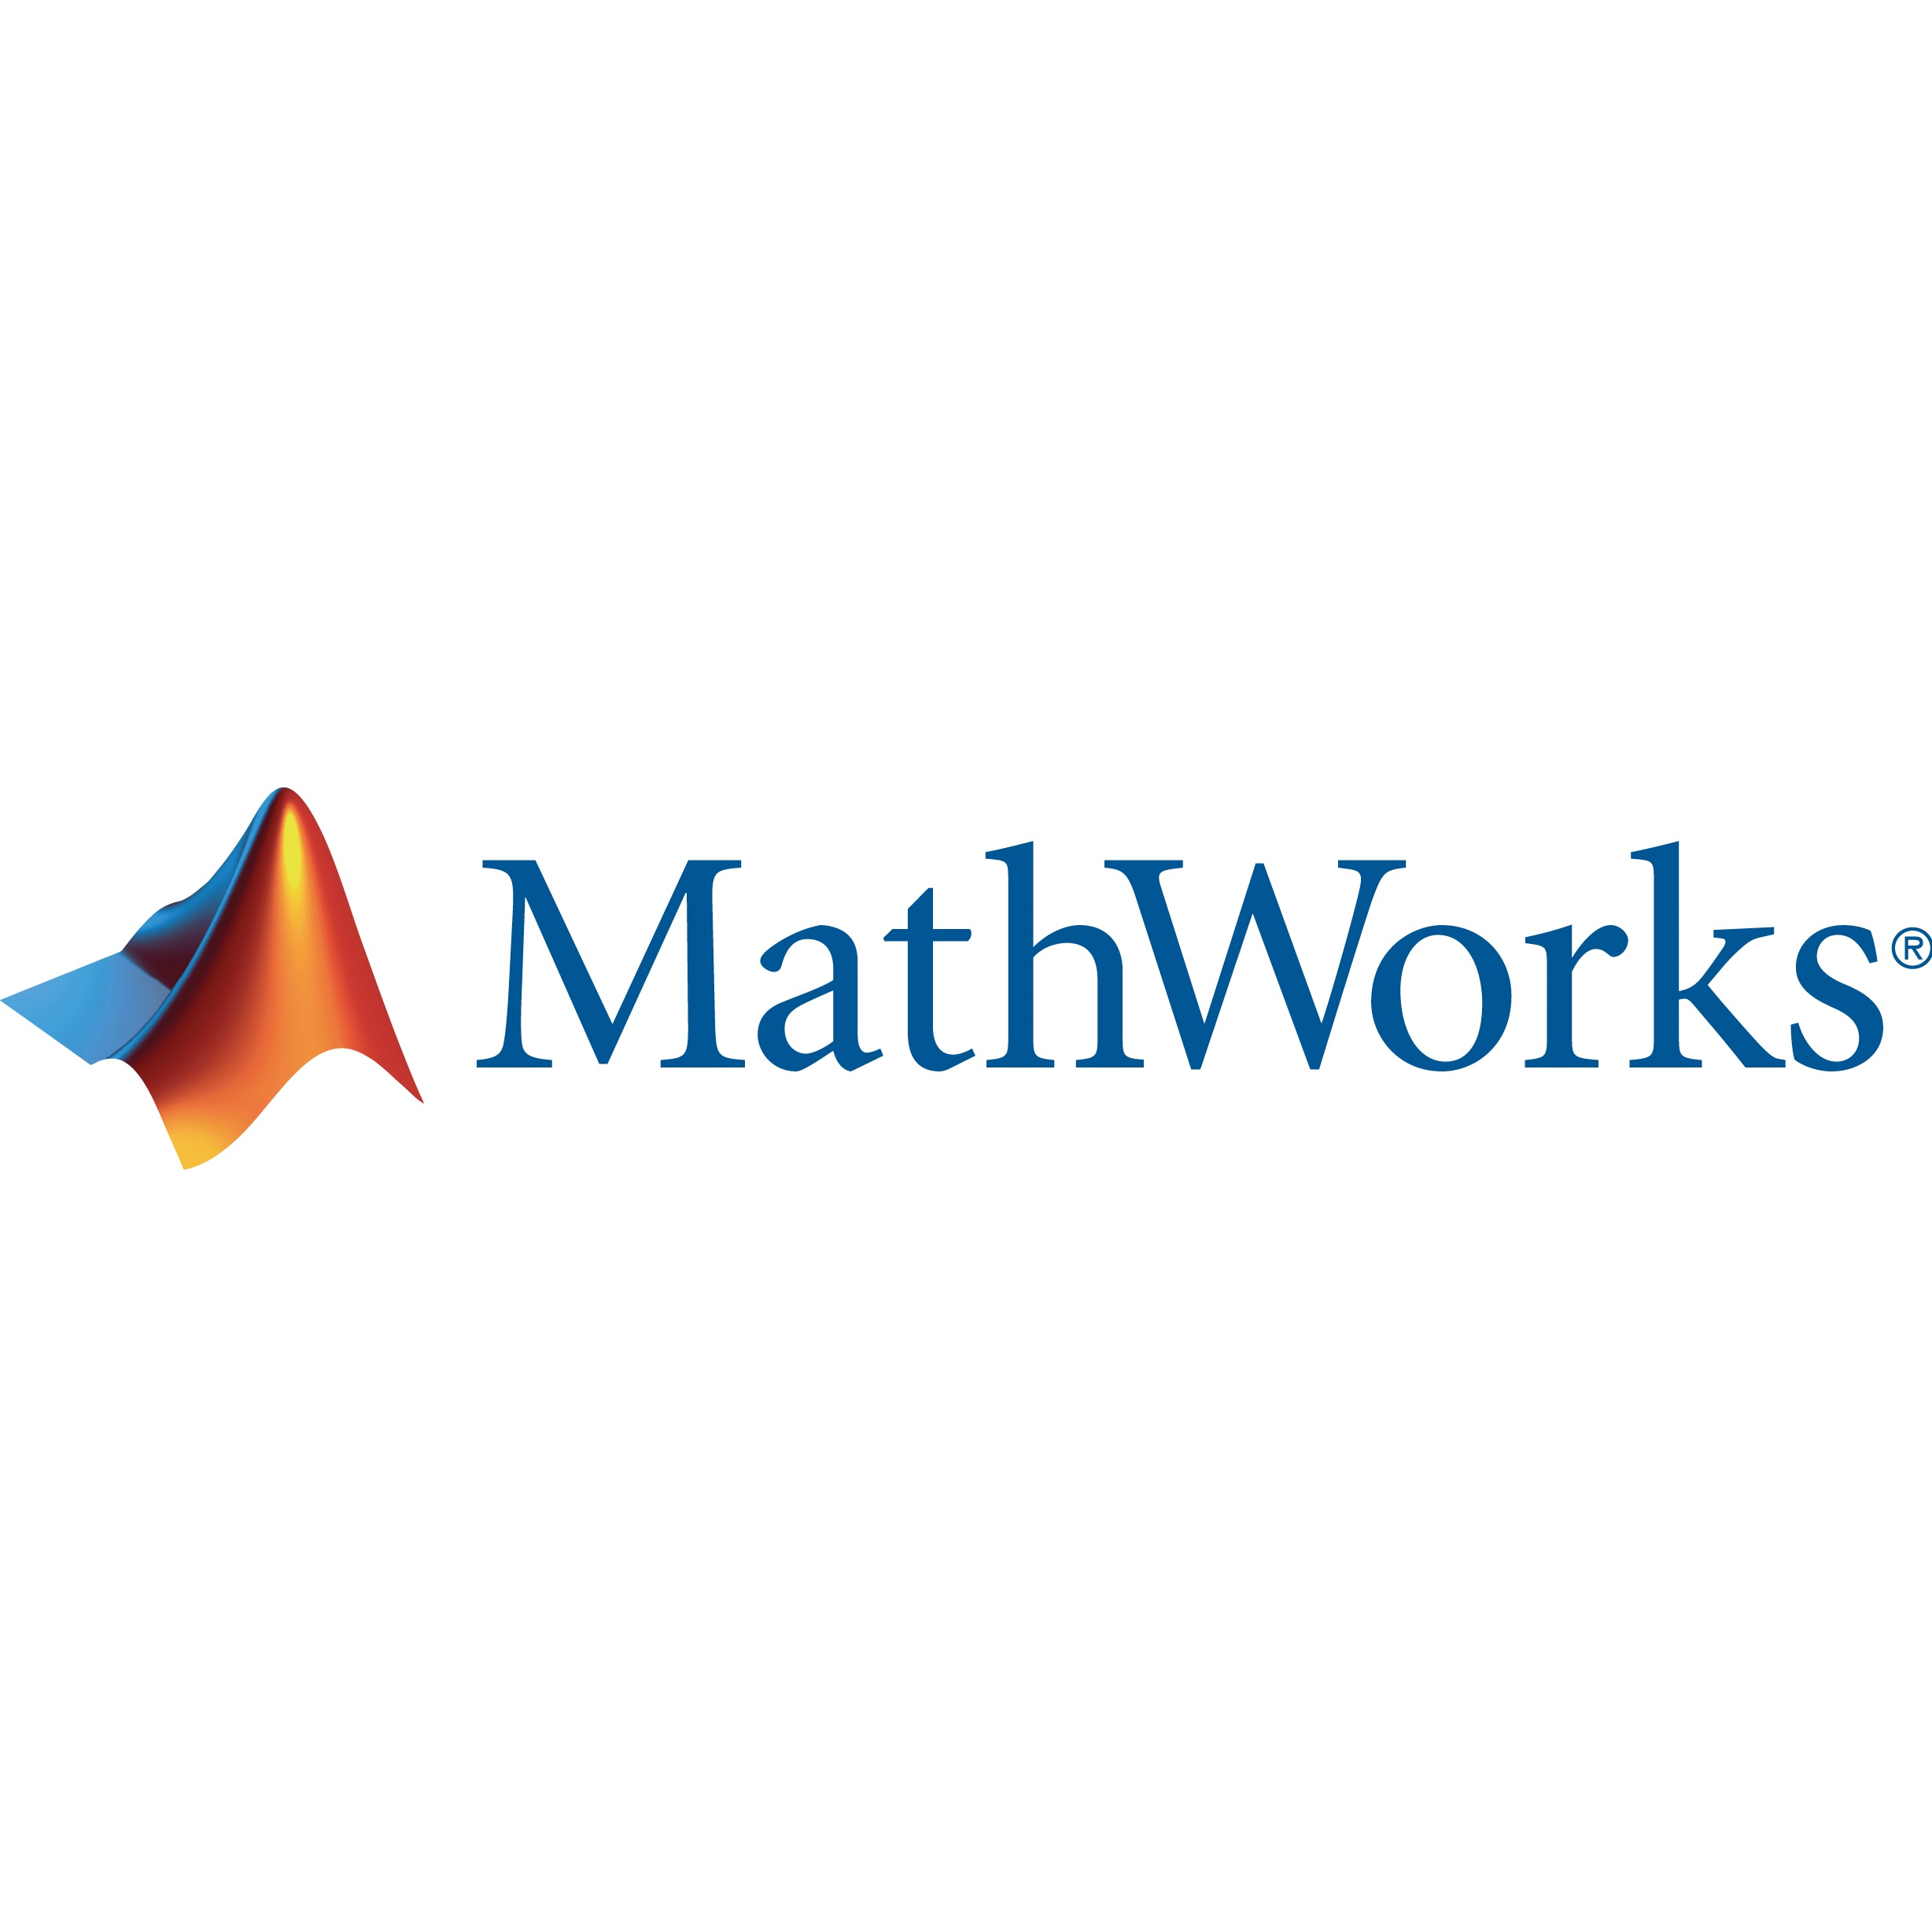 Mathworks_logo_(square)